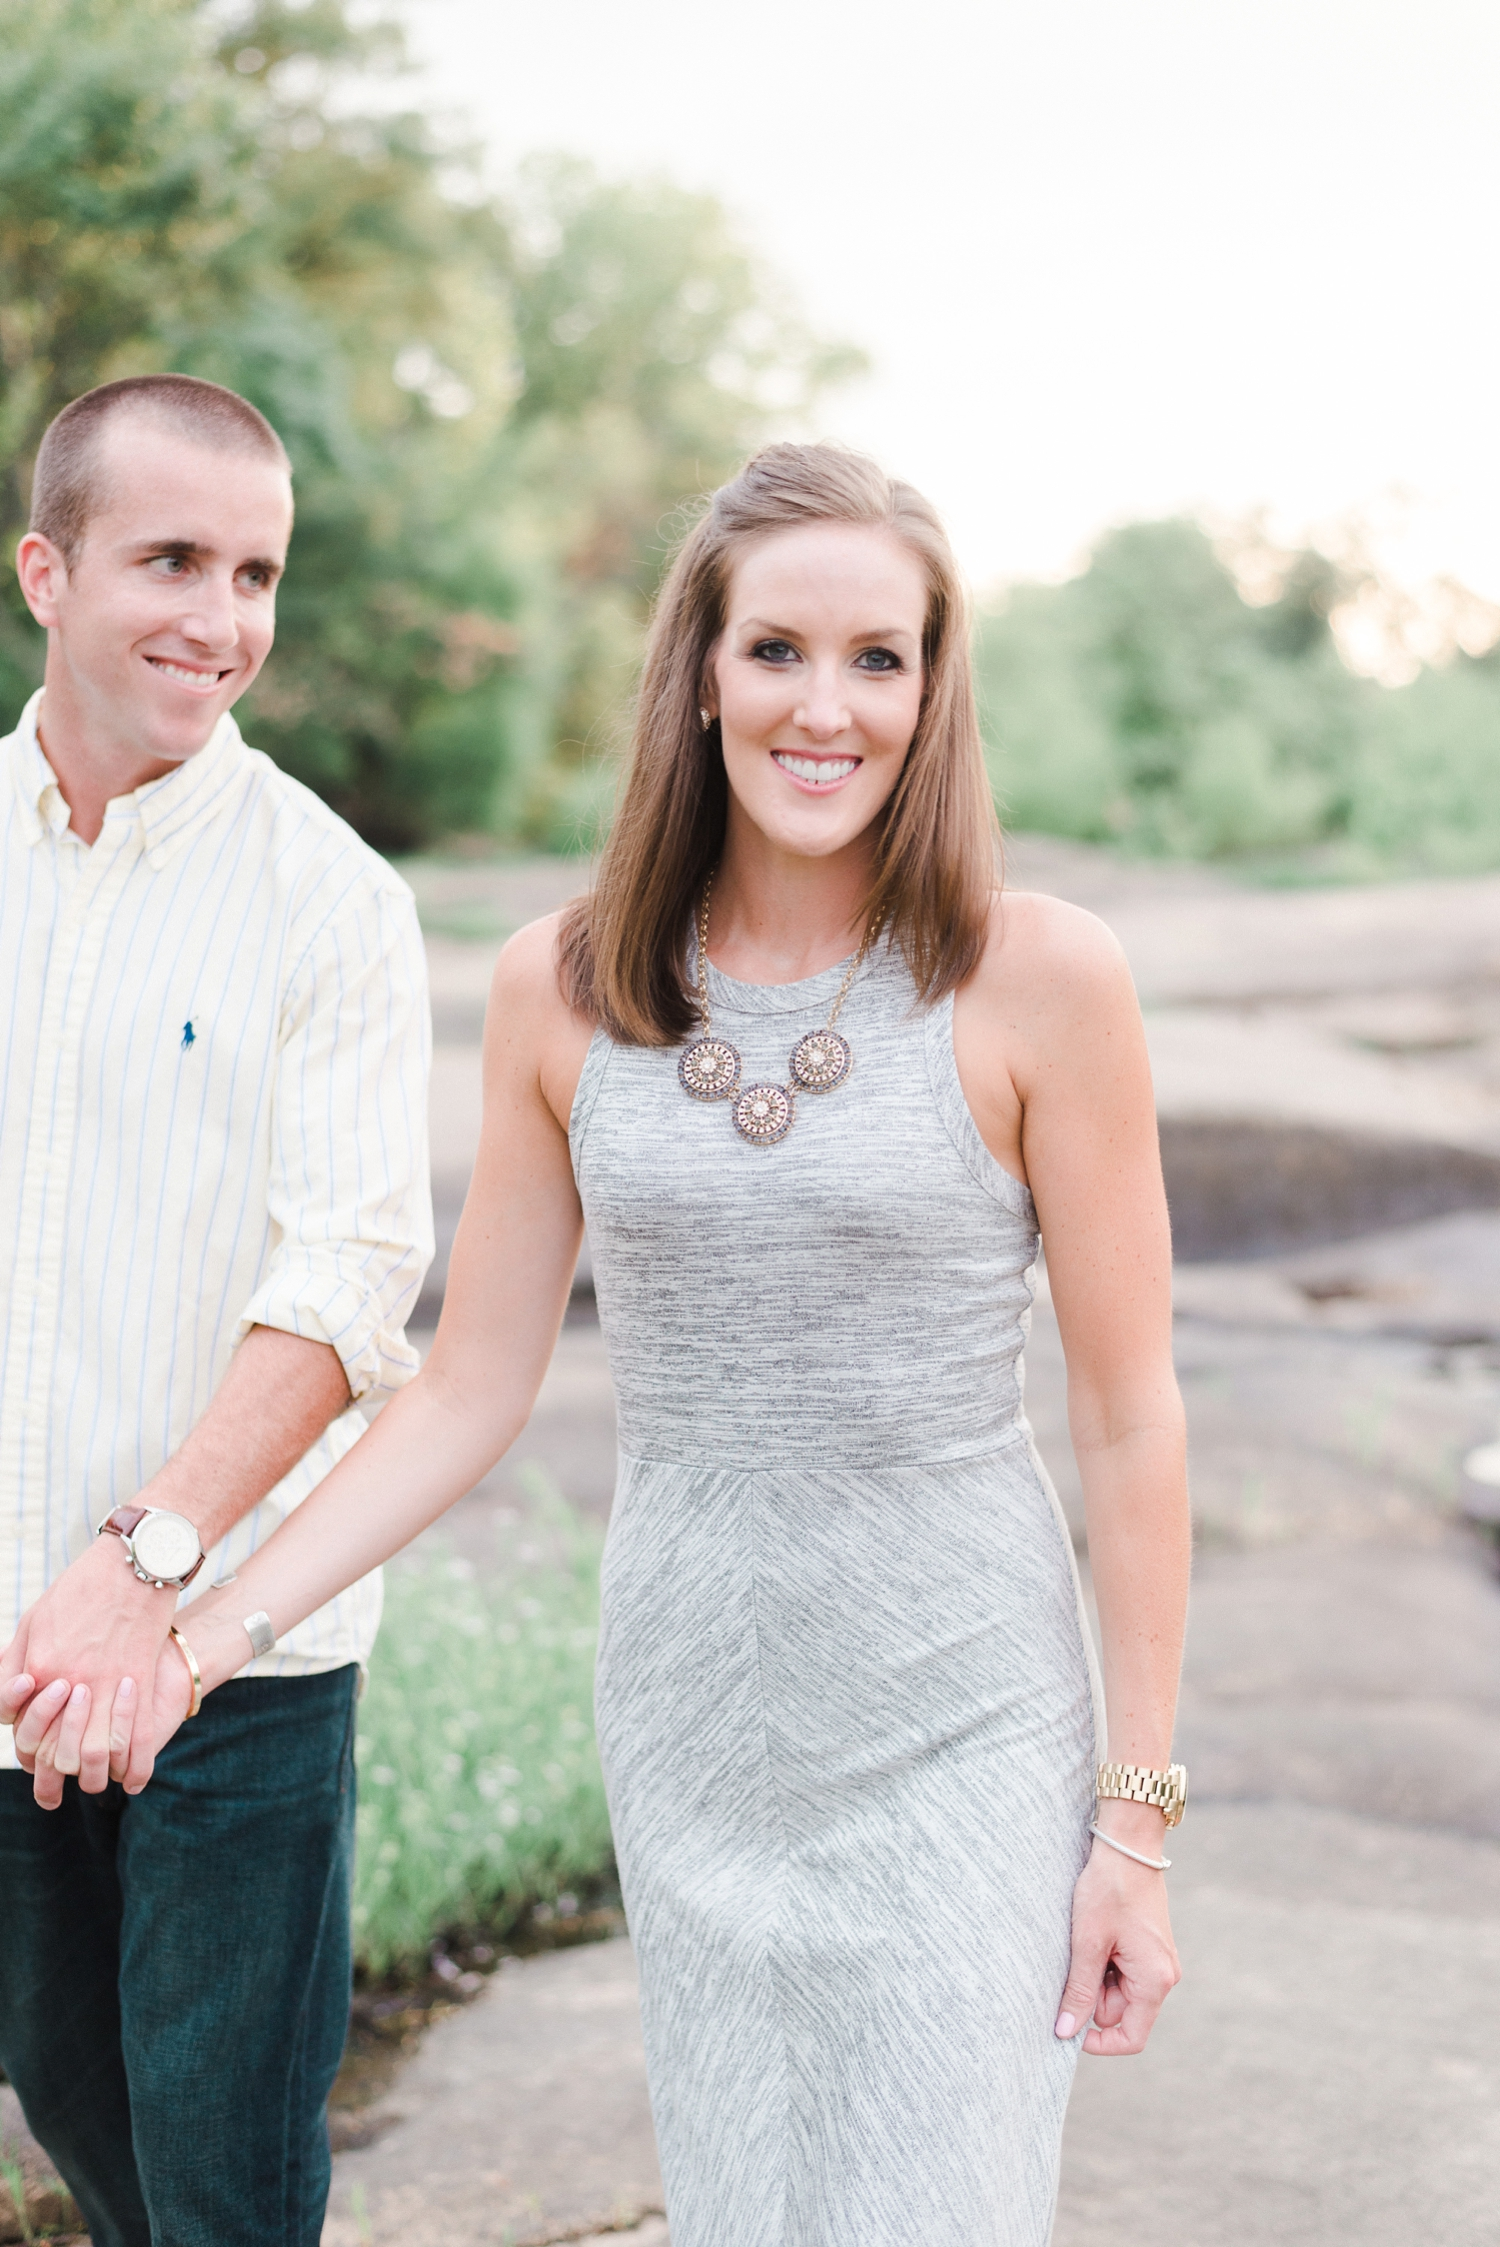 Maymon_Park_richmond_engagement_photography_0030.jpg